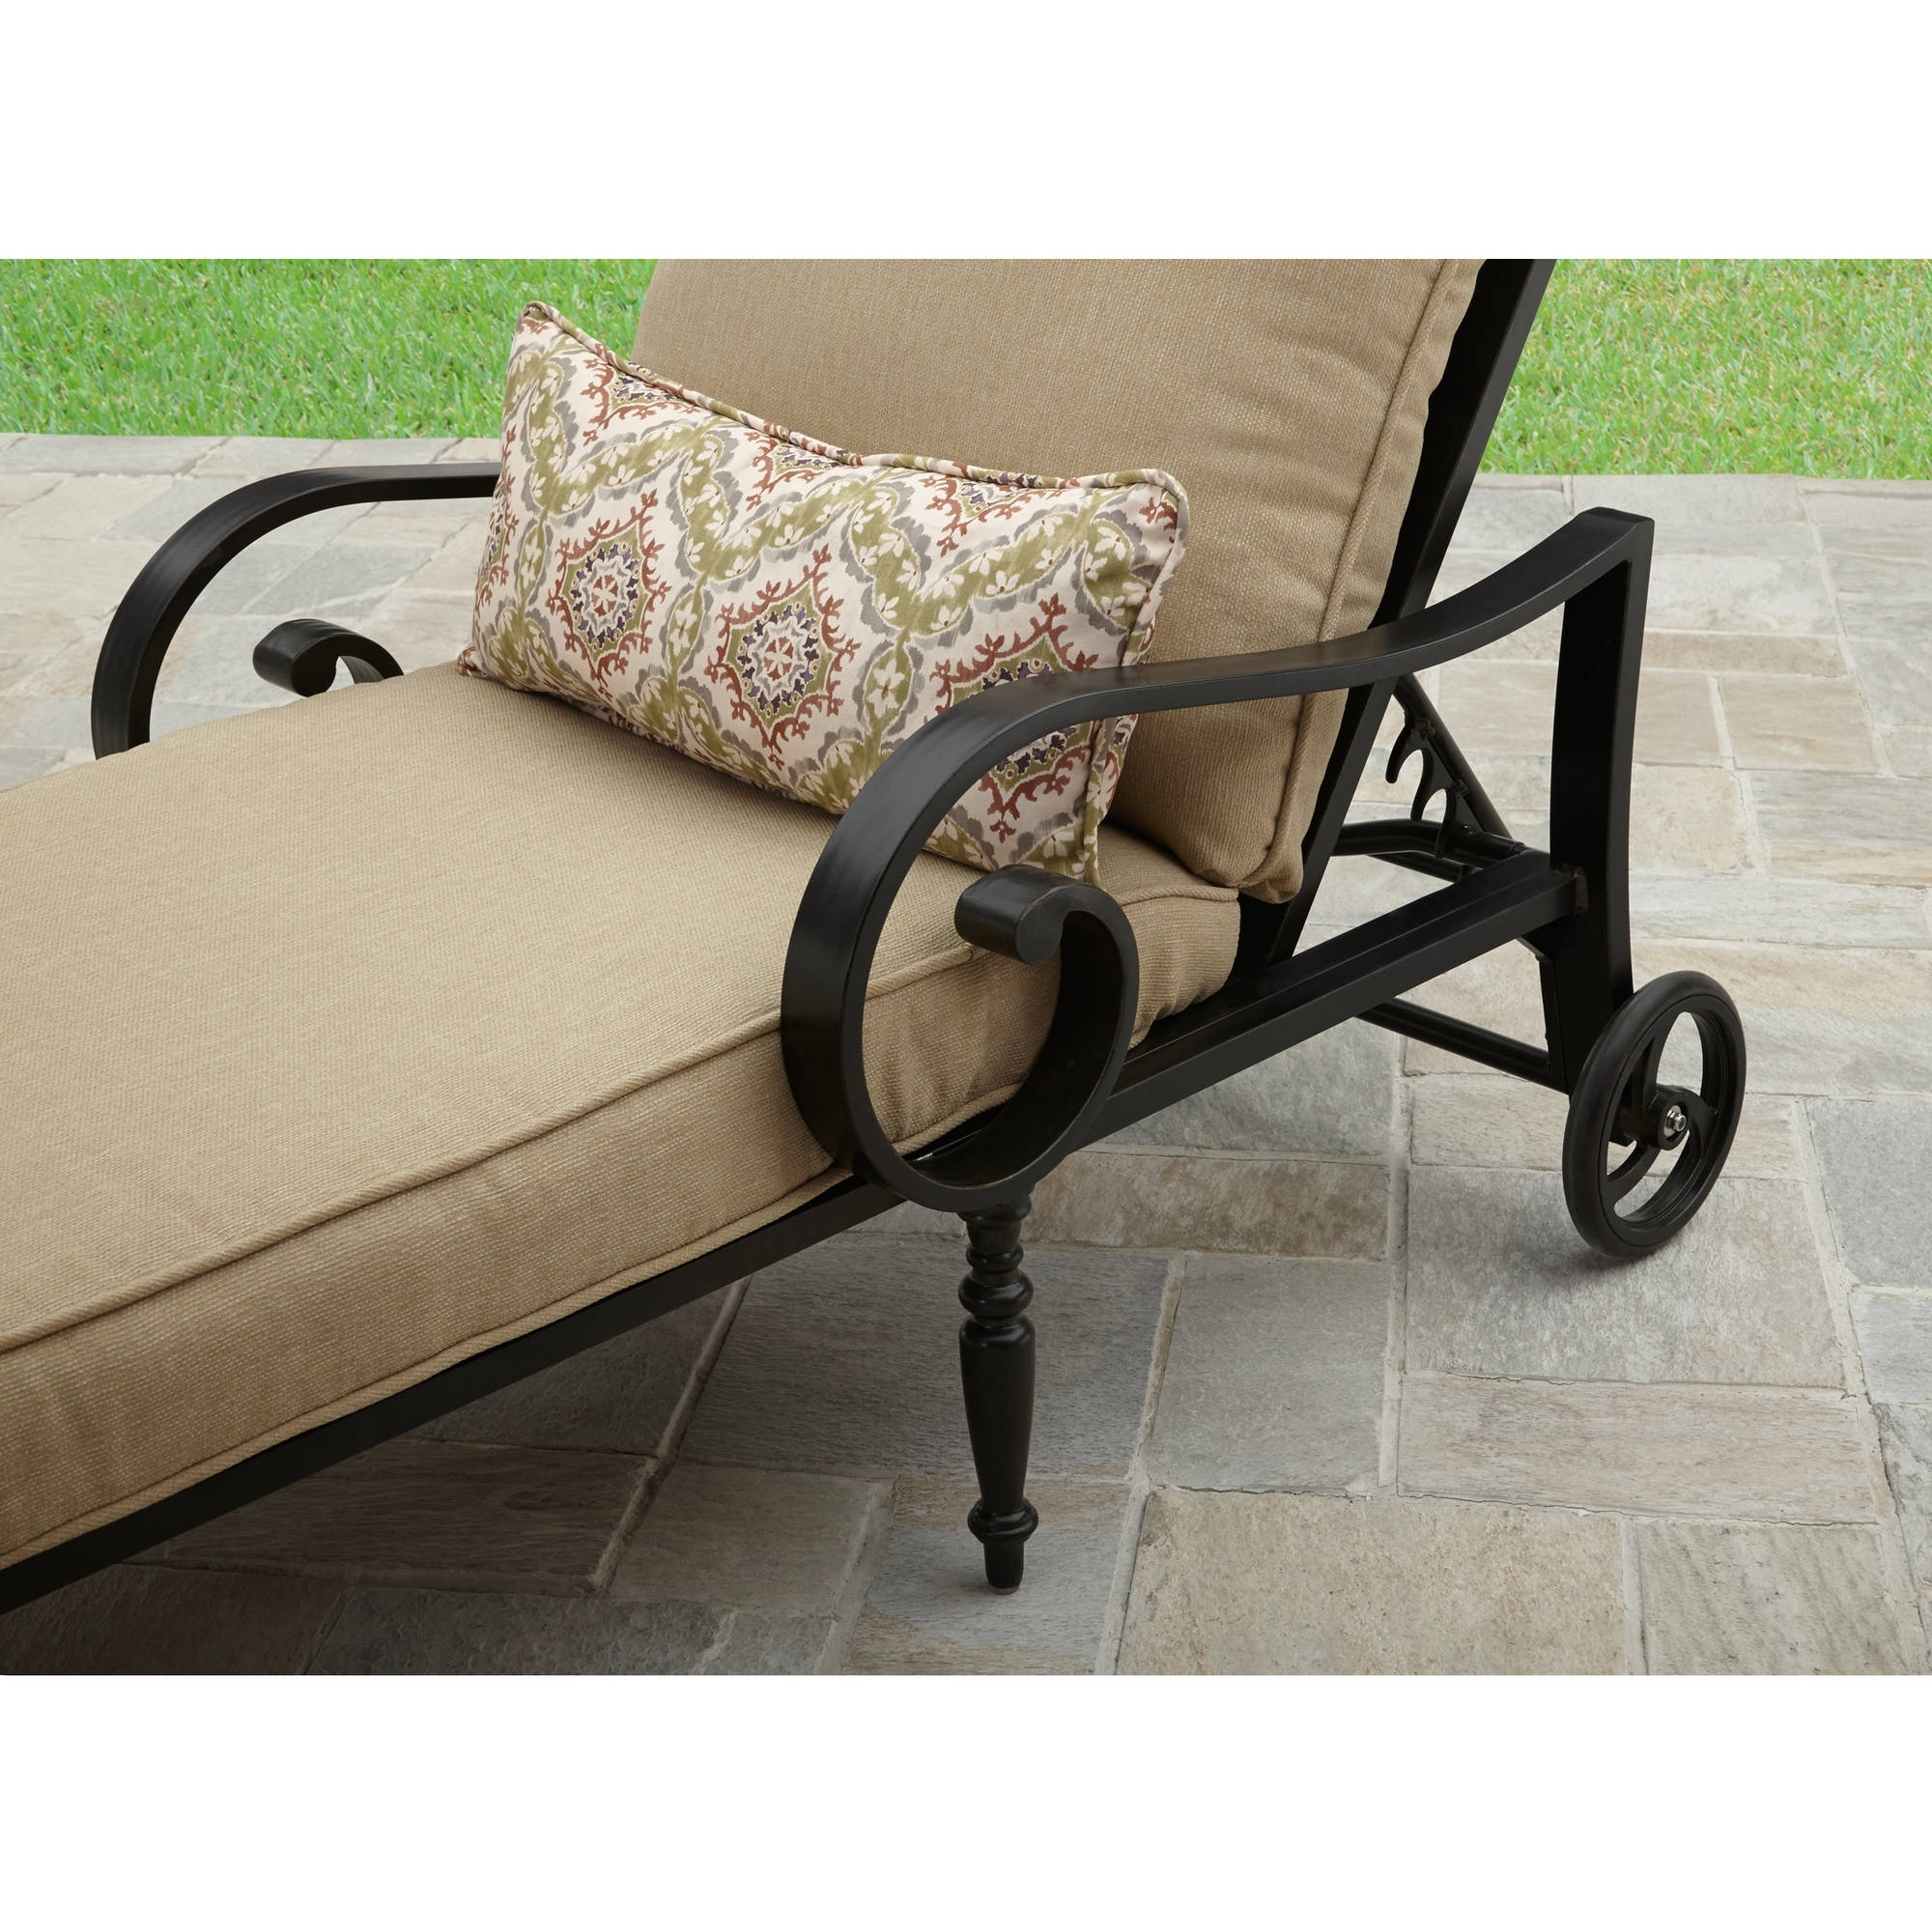 Current Cast Aluminum Chaise Lounges With Wheels In Better Homes And Gardens Englewood Heights Ii Aluminum Outdoor (View 9 of 15)